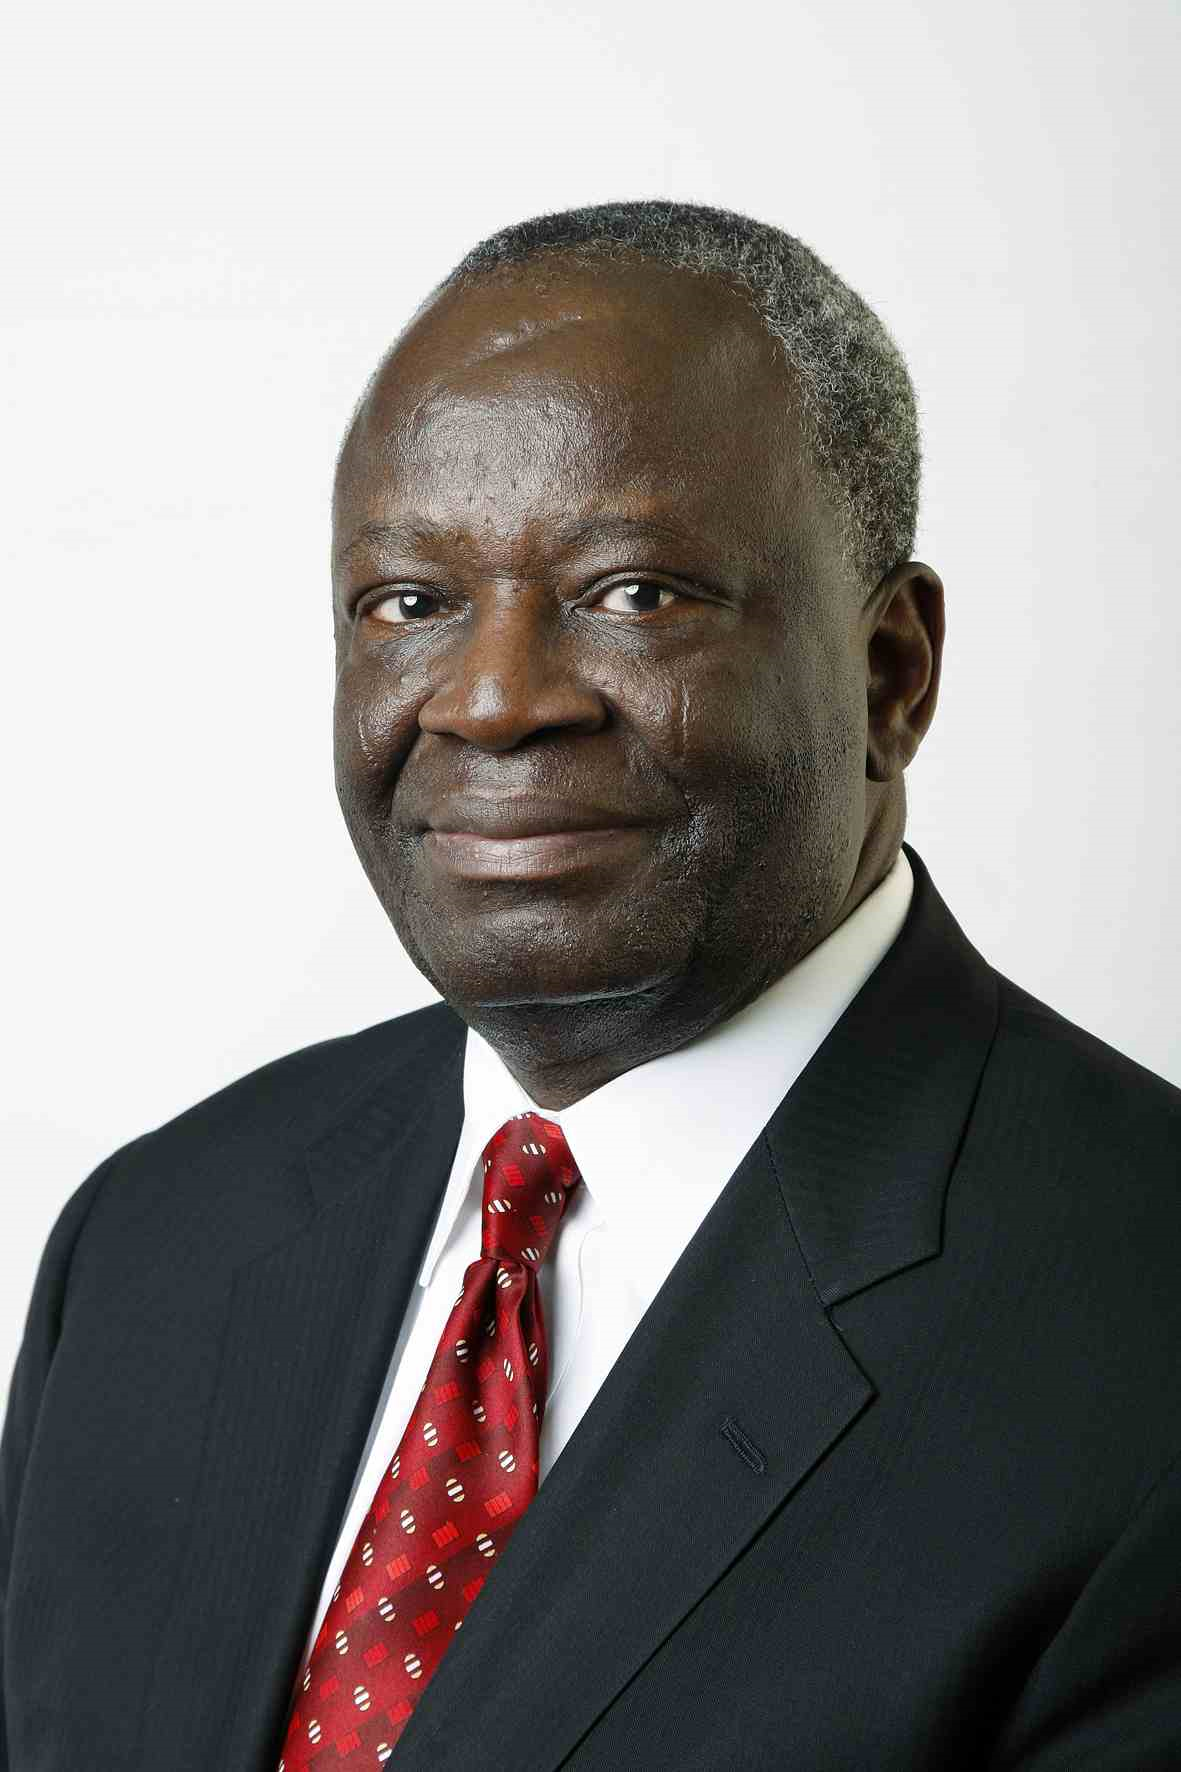 Buhari appoints Prof. Agboola Gambari as new Chief of Staff